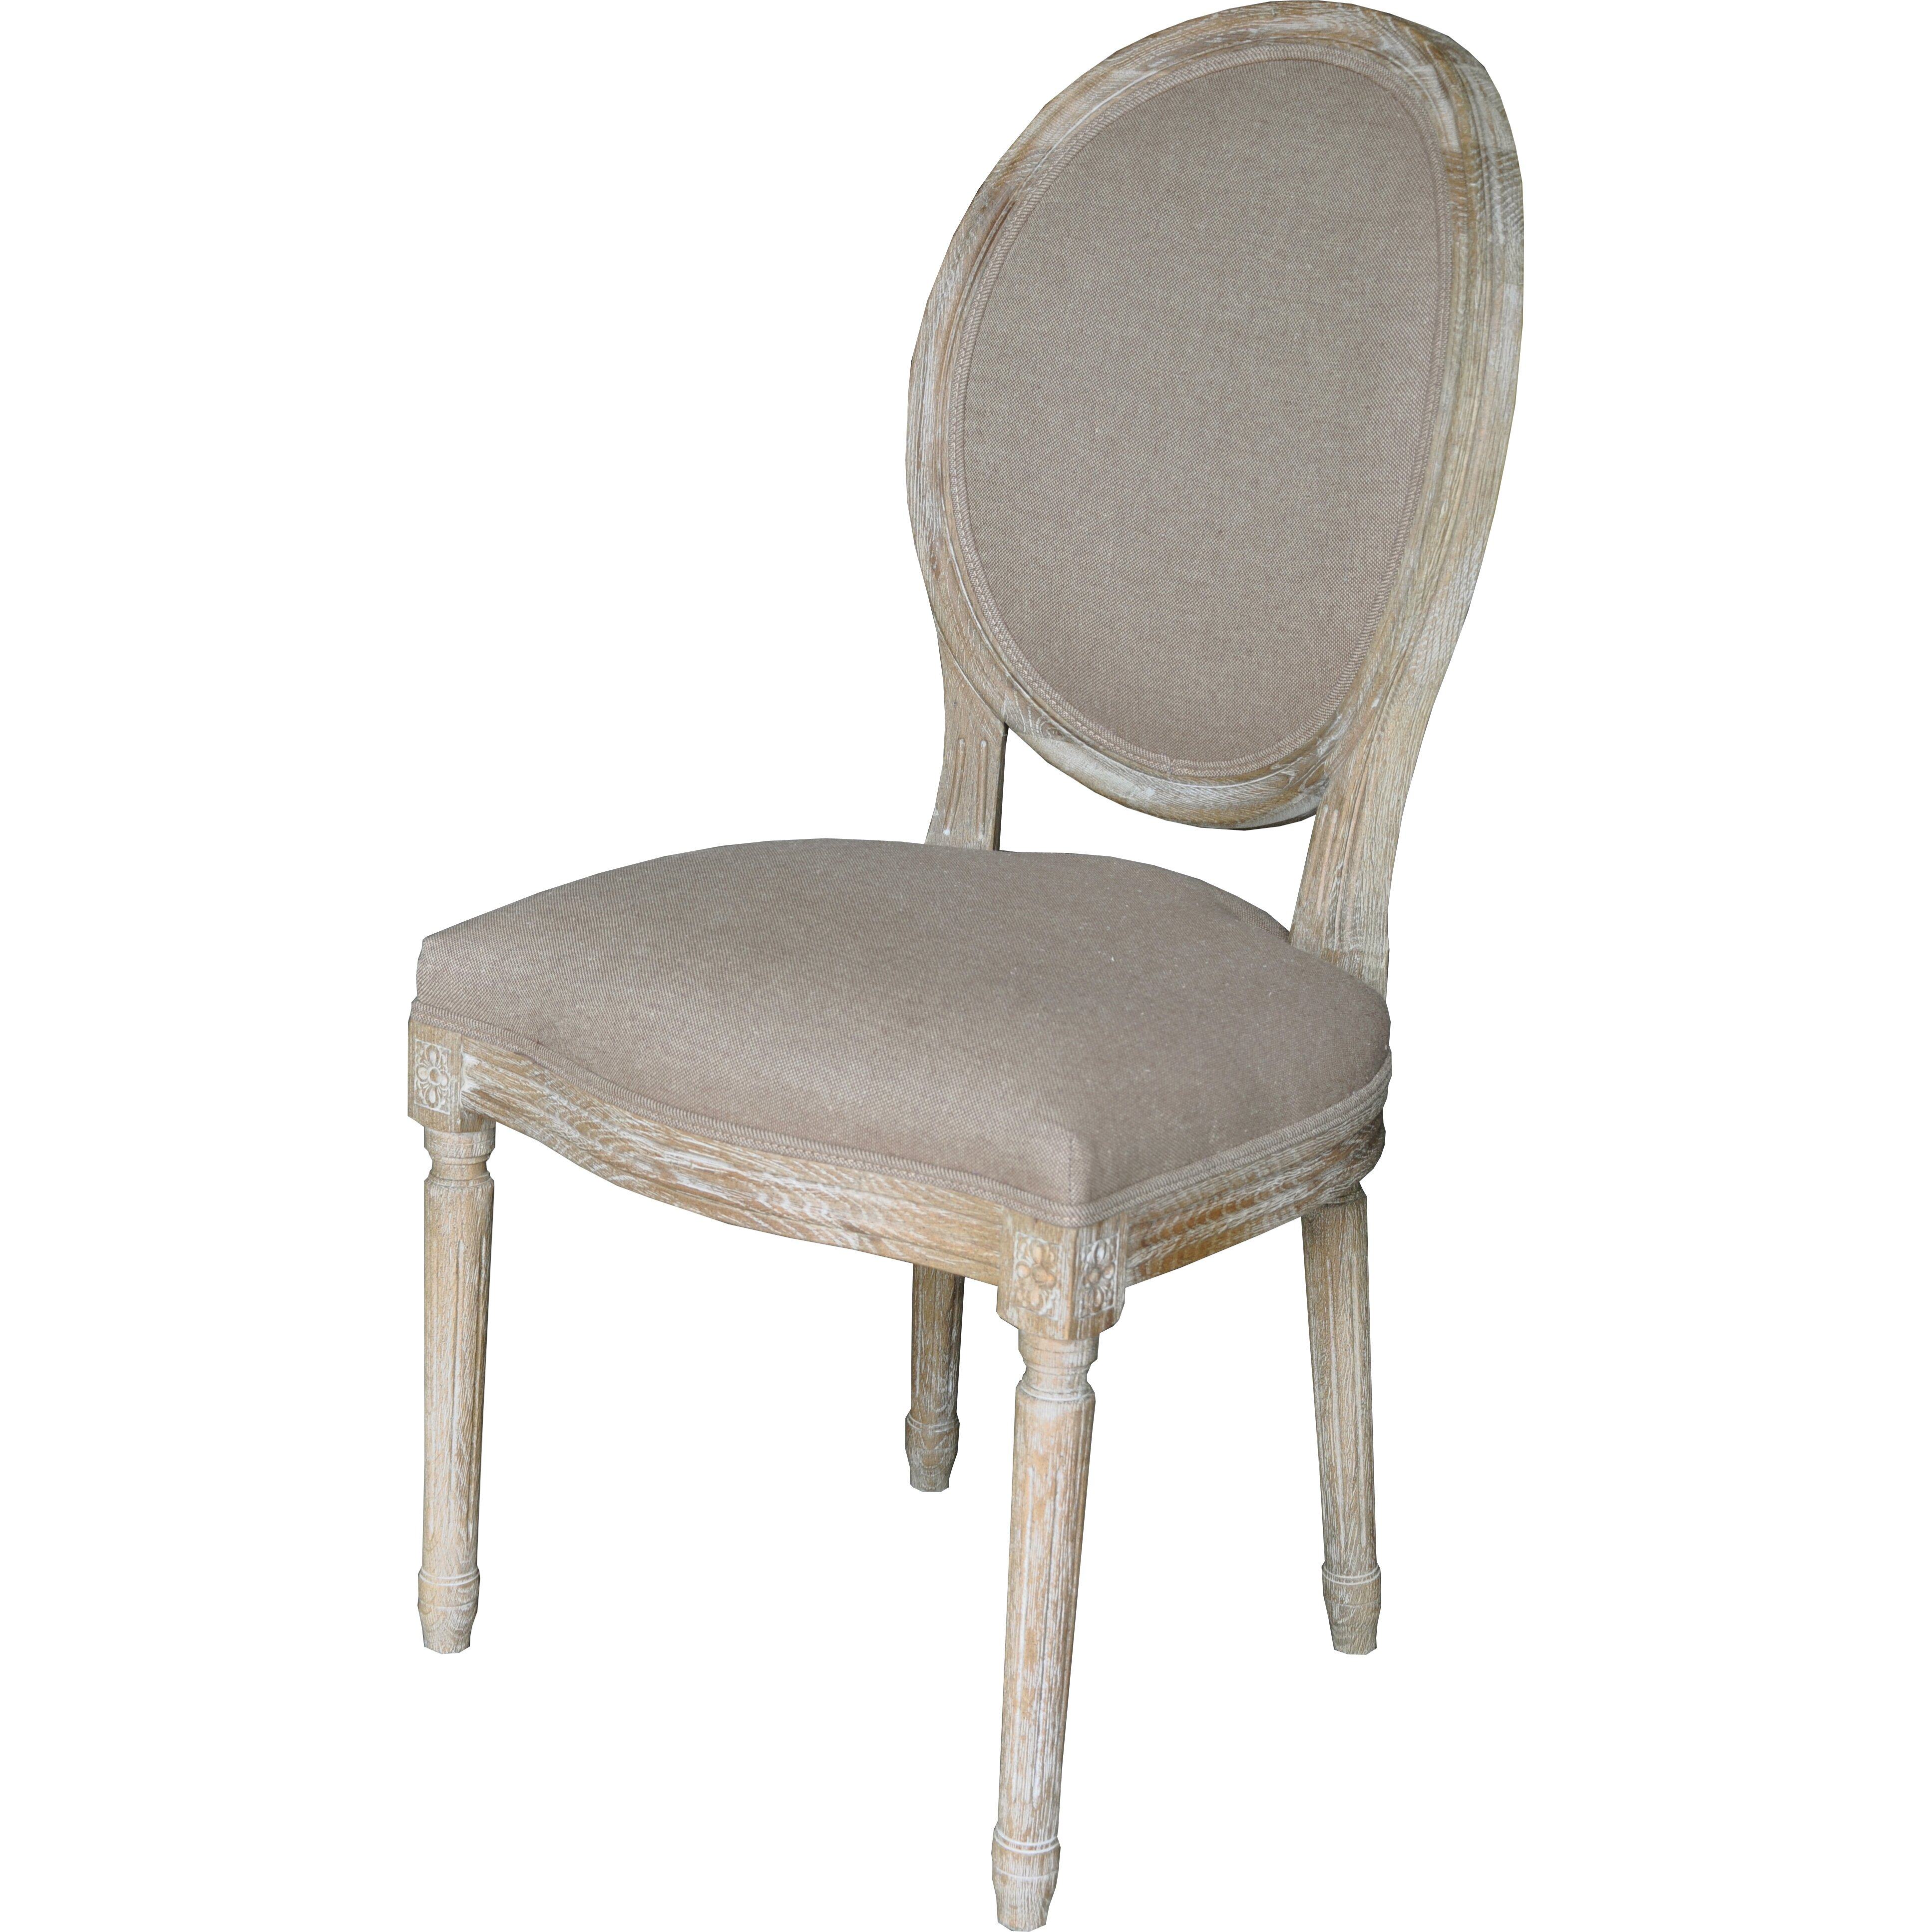 The bella collection louis side chair wayfair - Louis th chairs ...